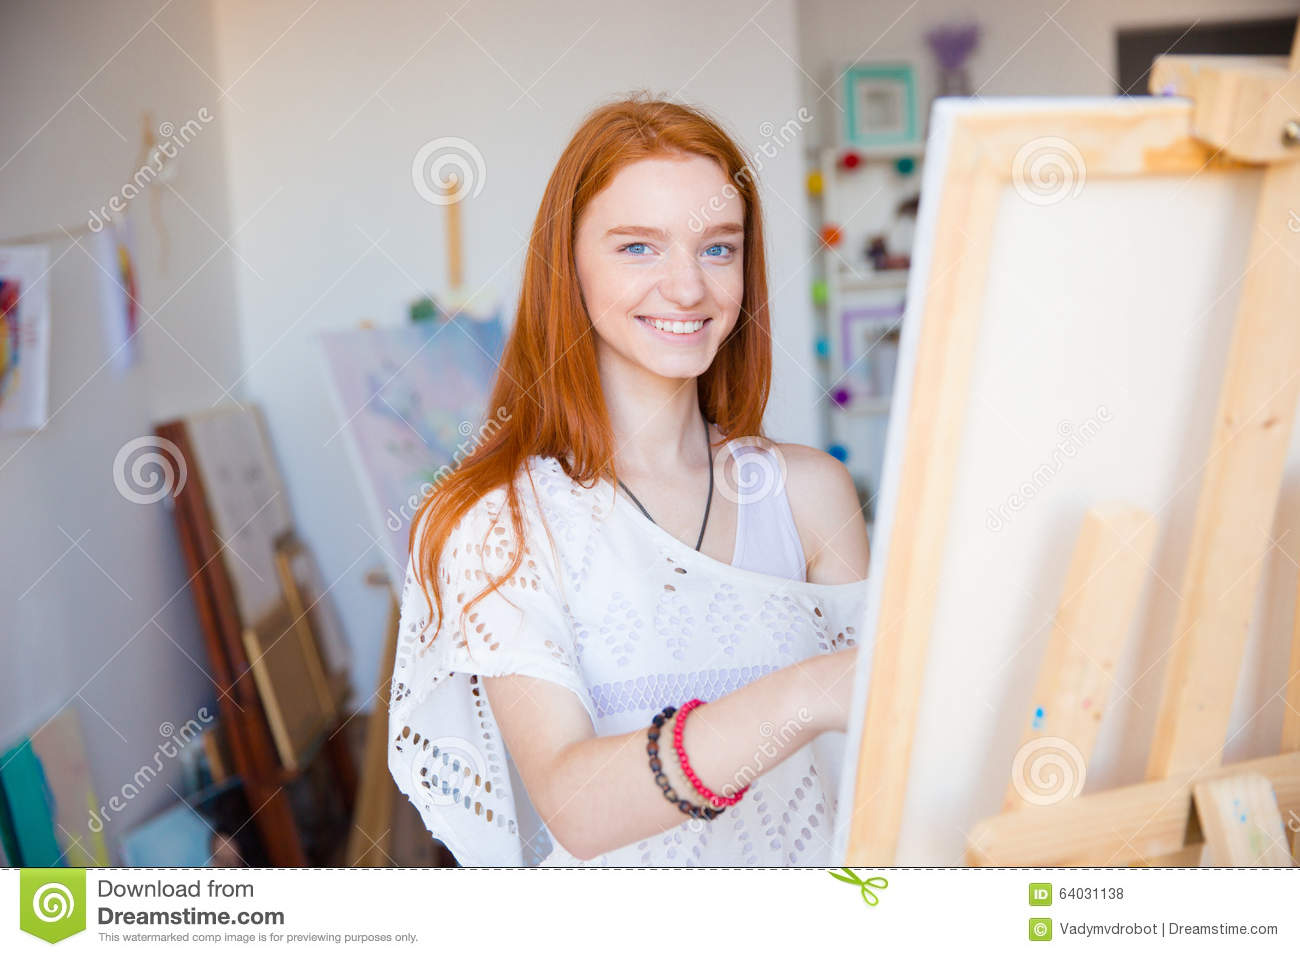 Cheerful Attractive Woman Artist Painting On Canvas In Art